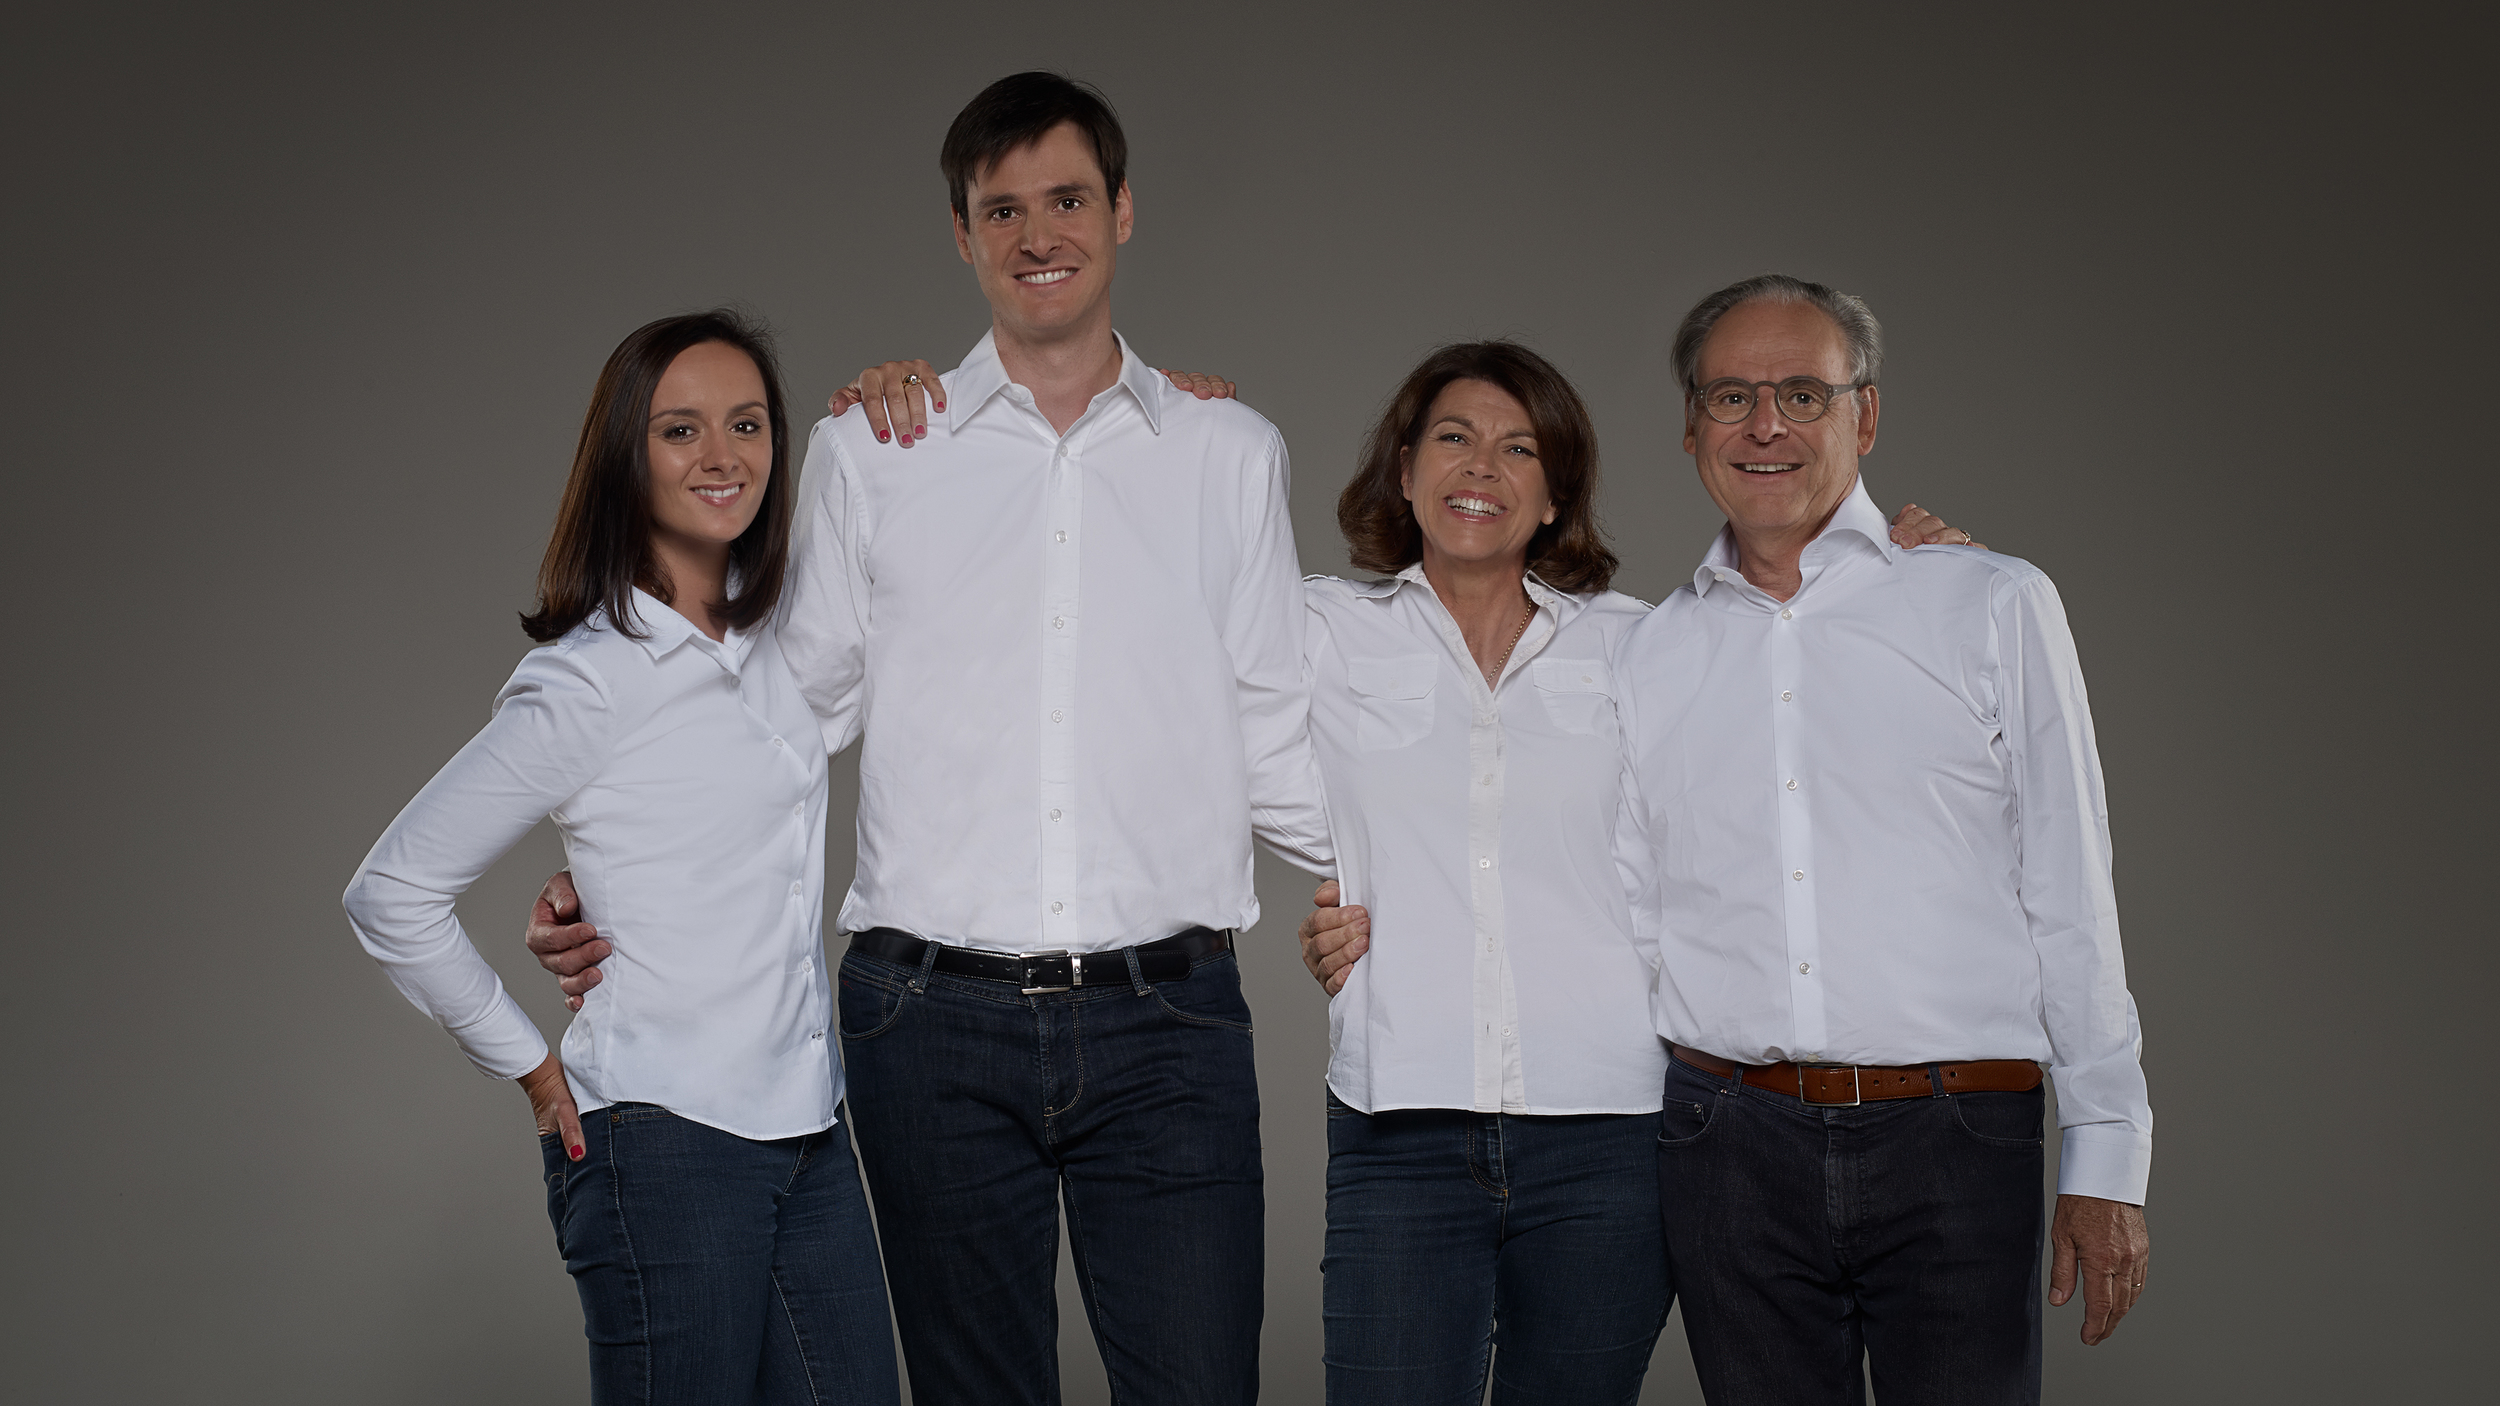 Decoster Family- Left to Right, Daughter-in-law Caroline, Son Ludovic, Parents Florence and Dominique Decoster (Photo credit: Chateau Fleur Cardinale)